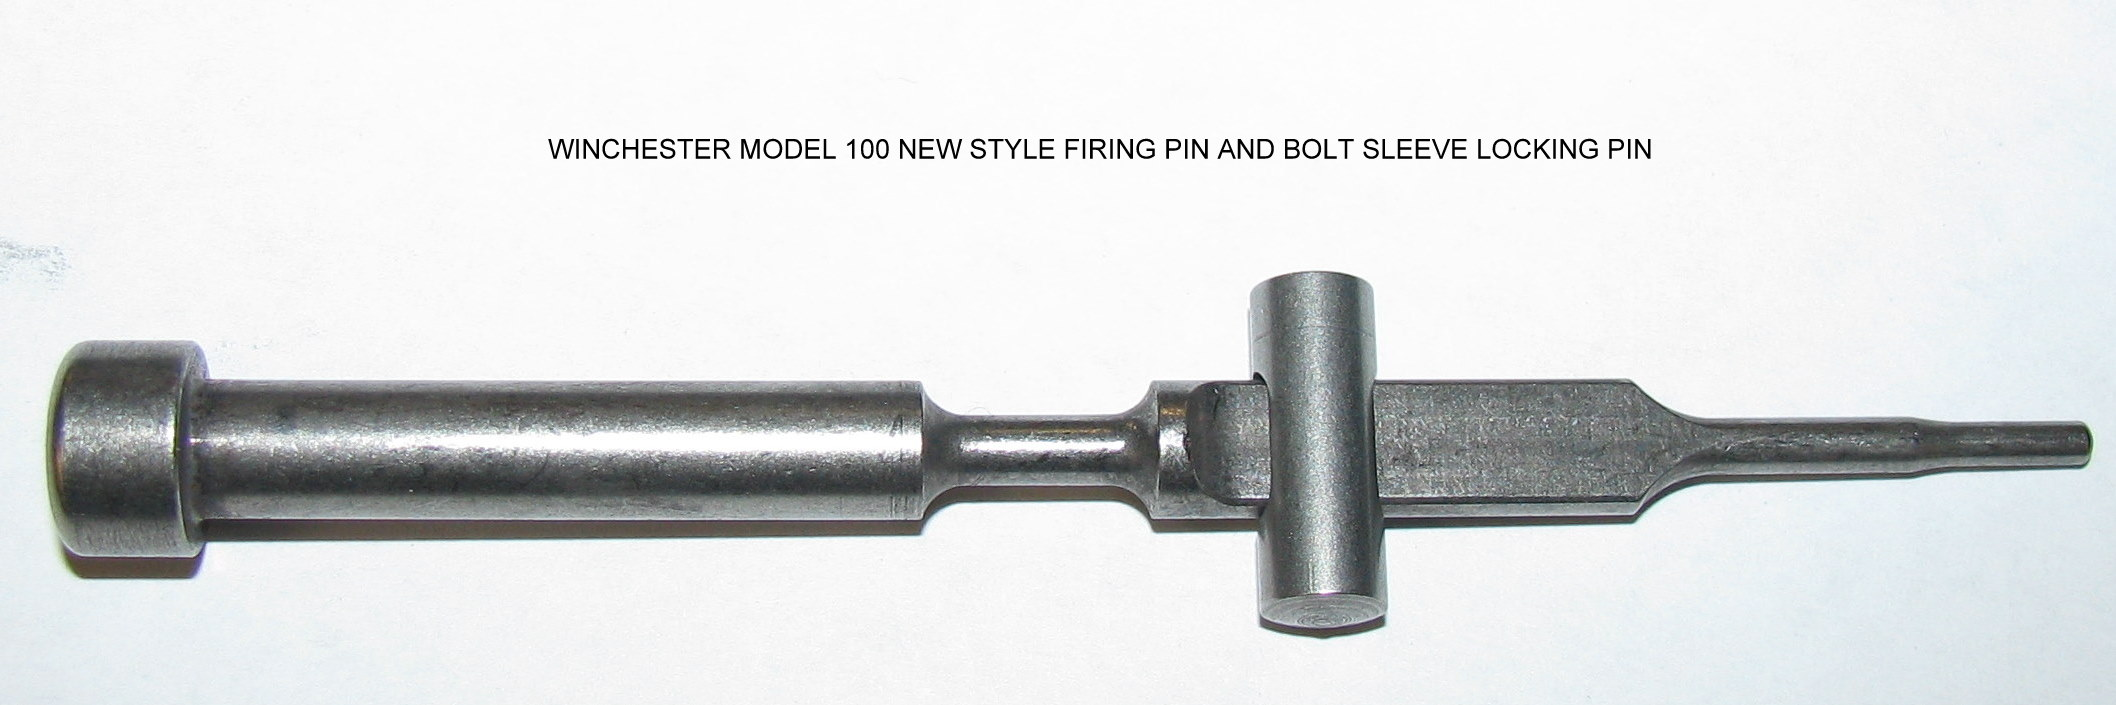 Firing Pin Kit - Are Only Available if Installed at Nu-Line Guns for